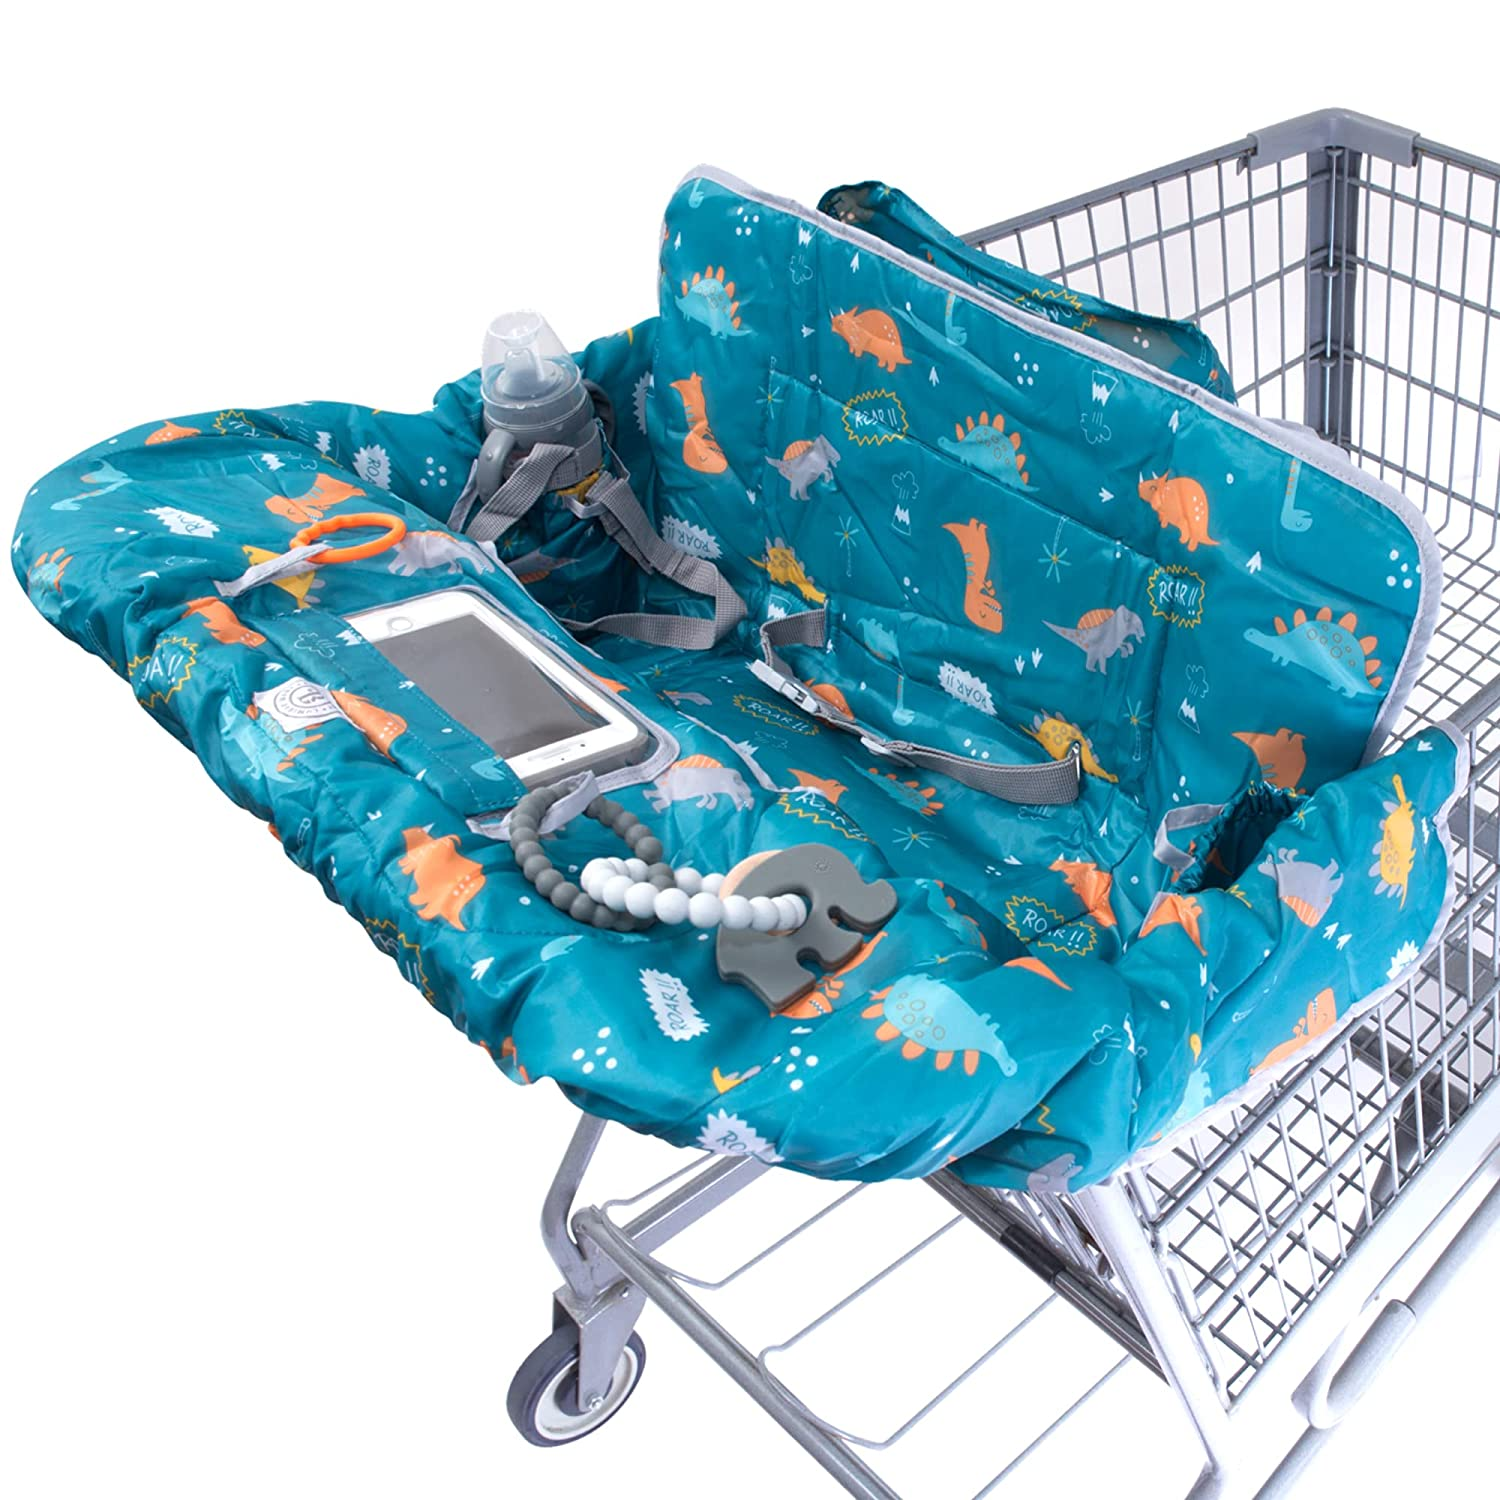 Lumiere Baby Shopping Cart Cover for Baby and Toddler - 2-in-1 High Chair Cover | 360 Full Protection, Patented Roll-in Style Pouch, Universal Fit, Machine Washable Great Gift Ideas for Mom (Dinosaur)